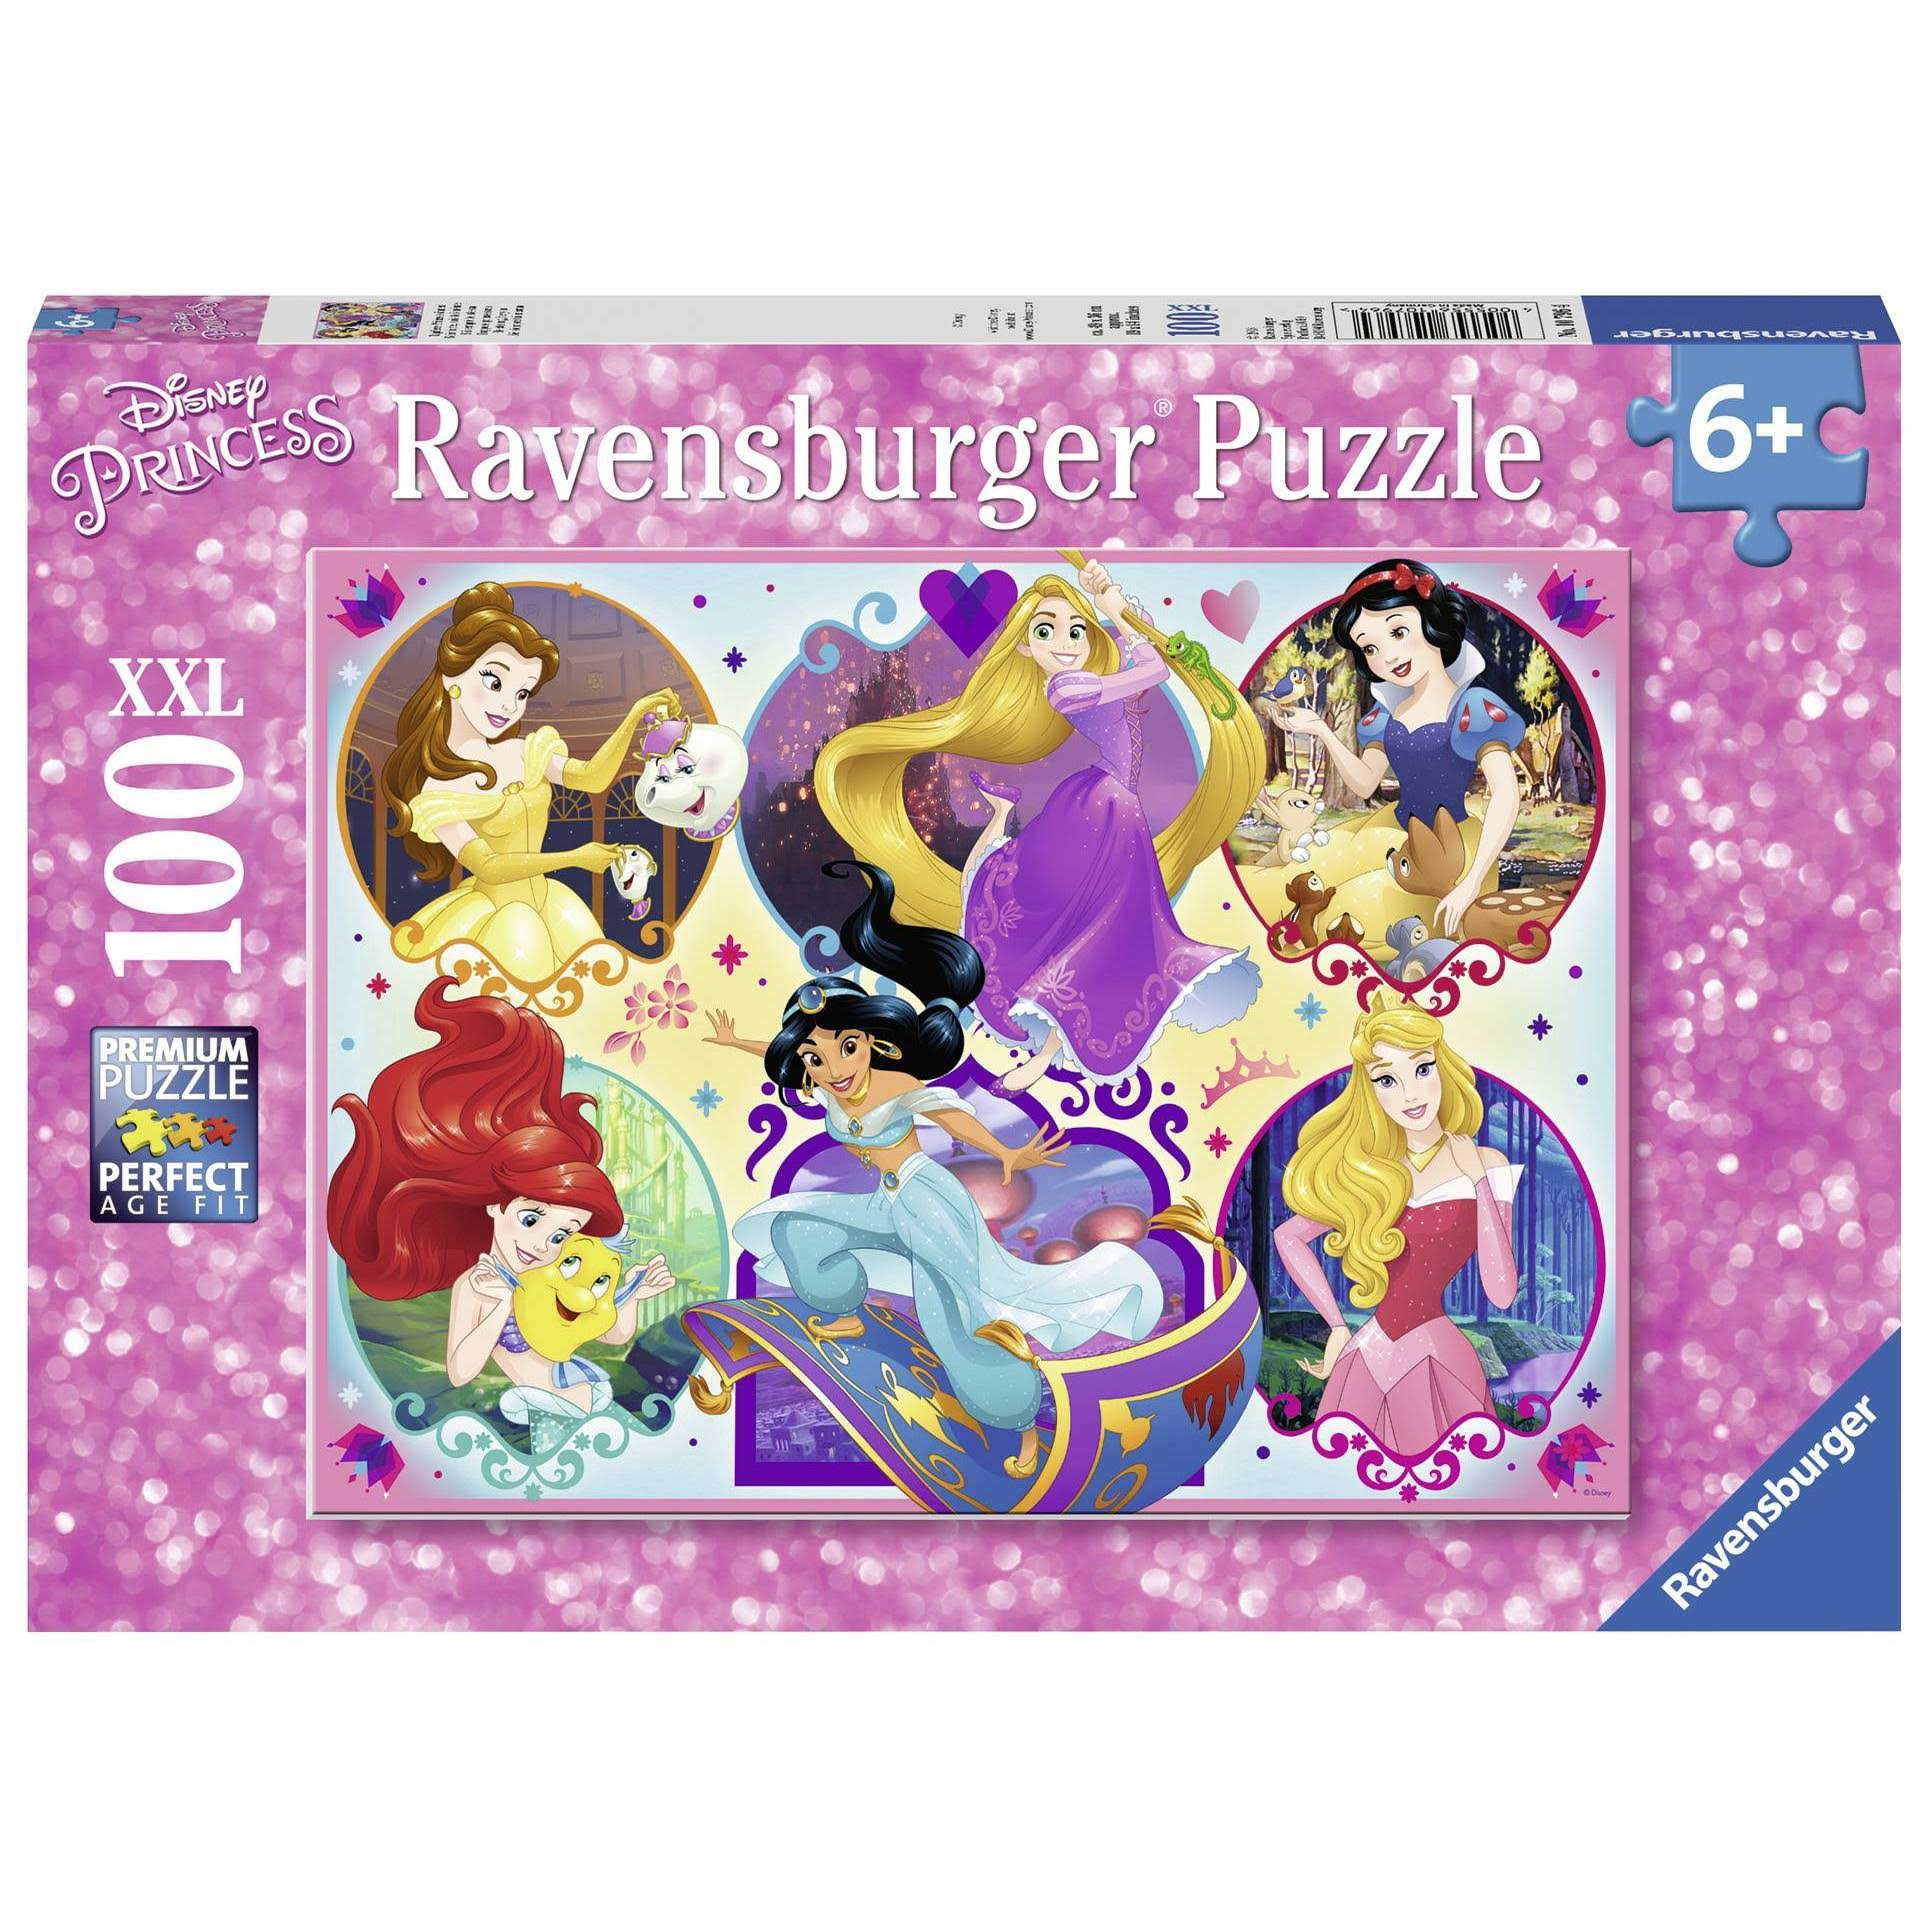 Ravensburger Disney Princess Jigsaw Puzzle - XX-Large, 100pcs